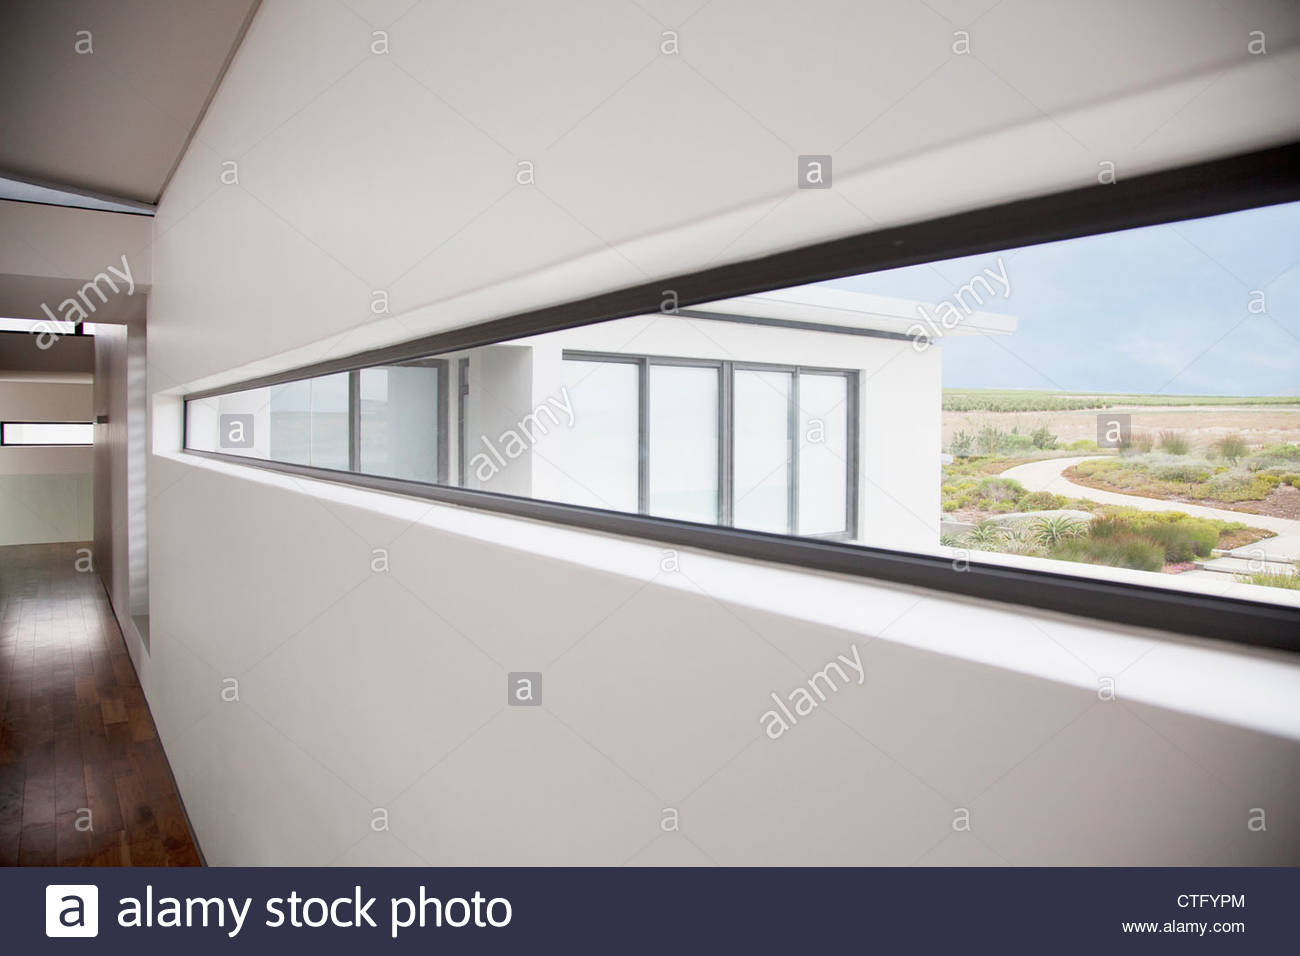 View from long window in modern house - Stock Image